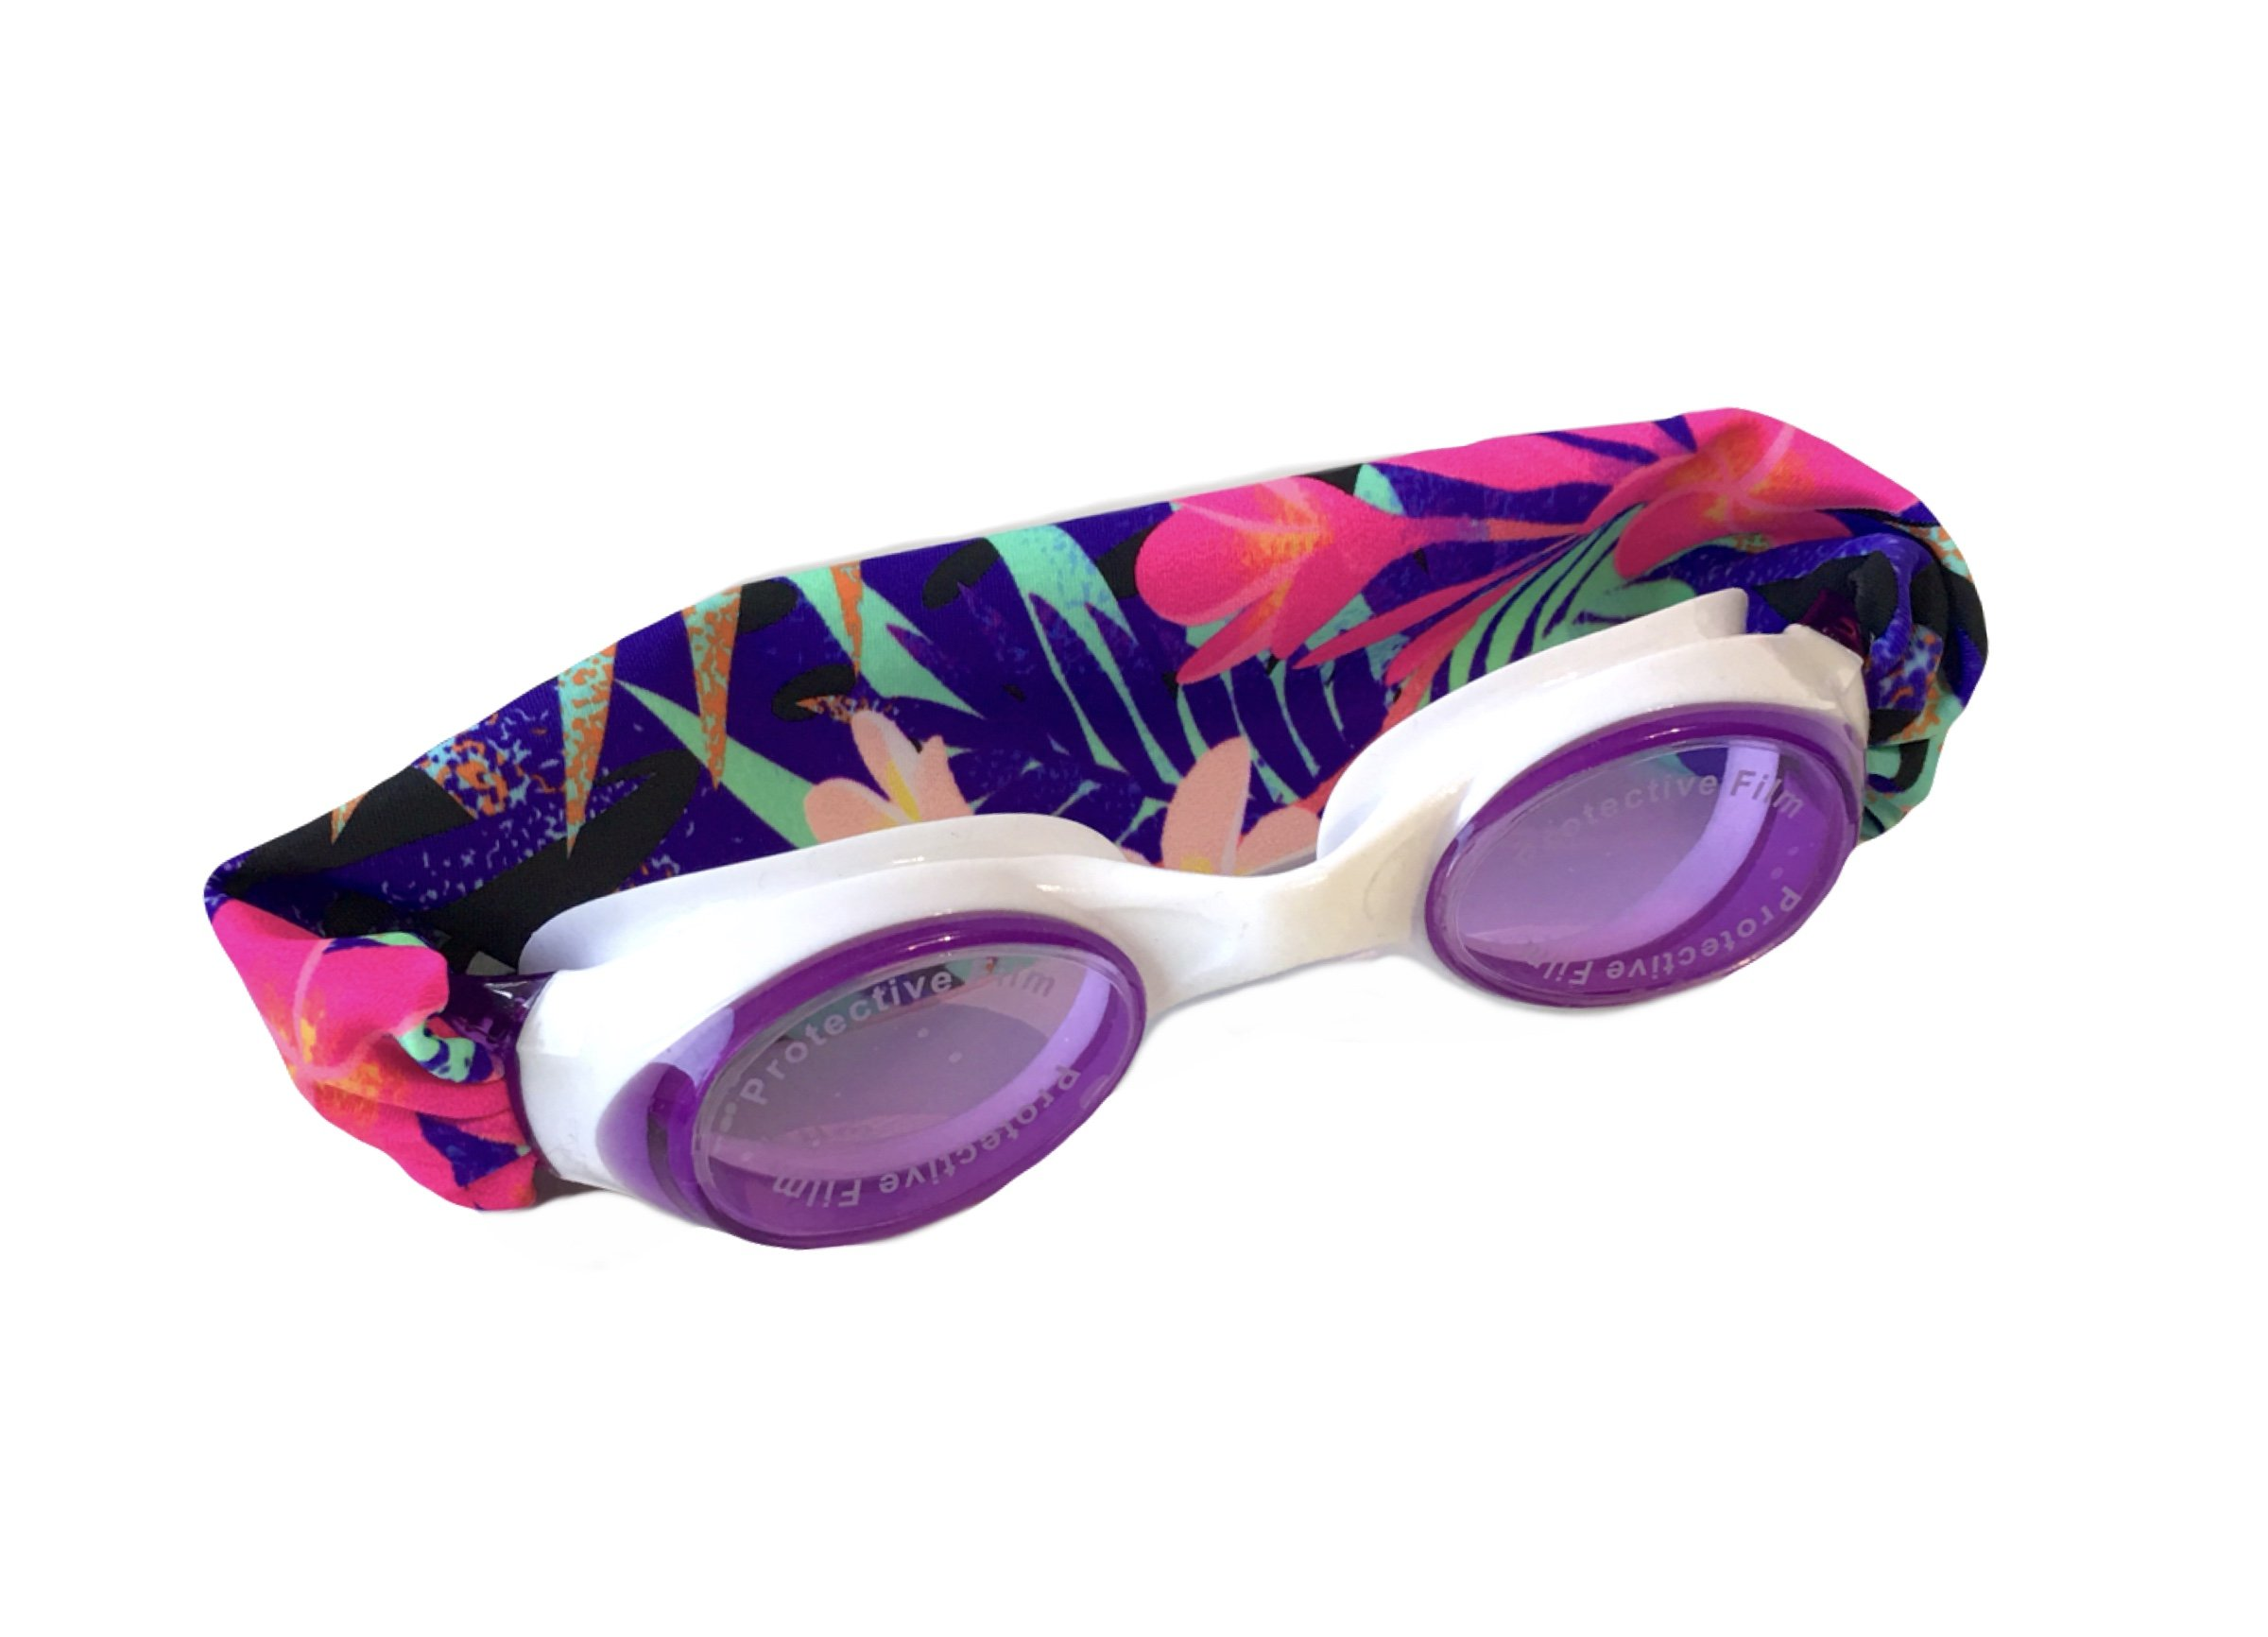 Splash Fiji Swim Goggles - Fun Fashionable Comfortable - Fits Kids & Adults - Won't Pull Your Hair - Easy to Use - High Visibility Anti-Fog Lenses - Patent Pending